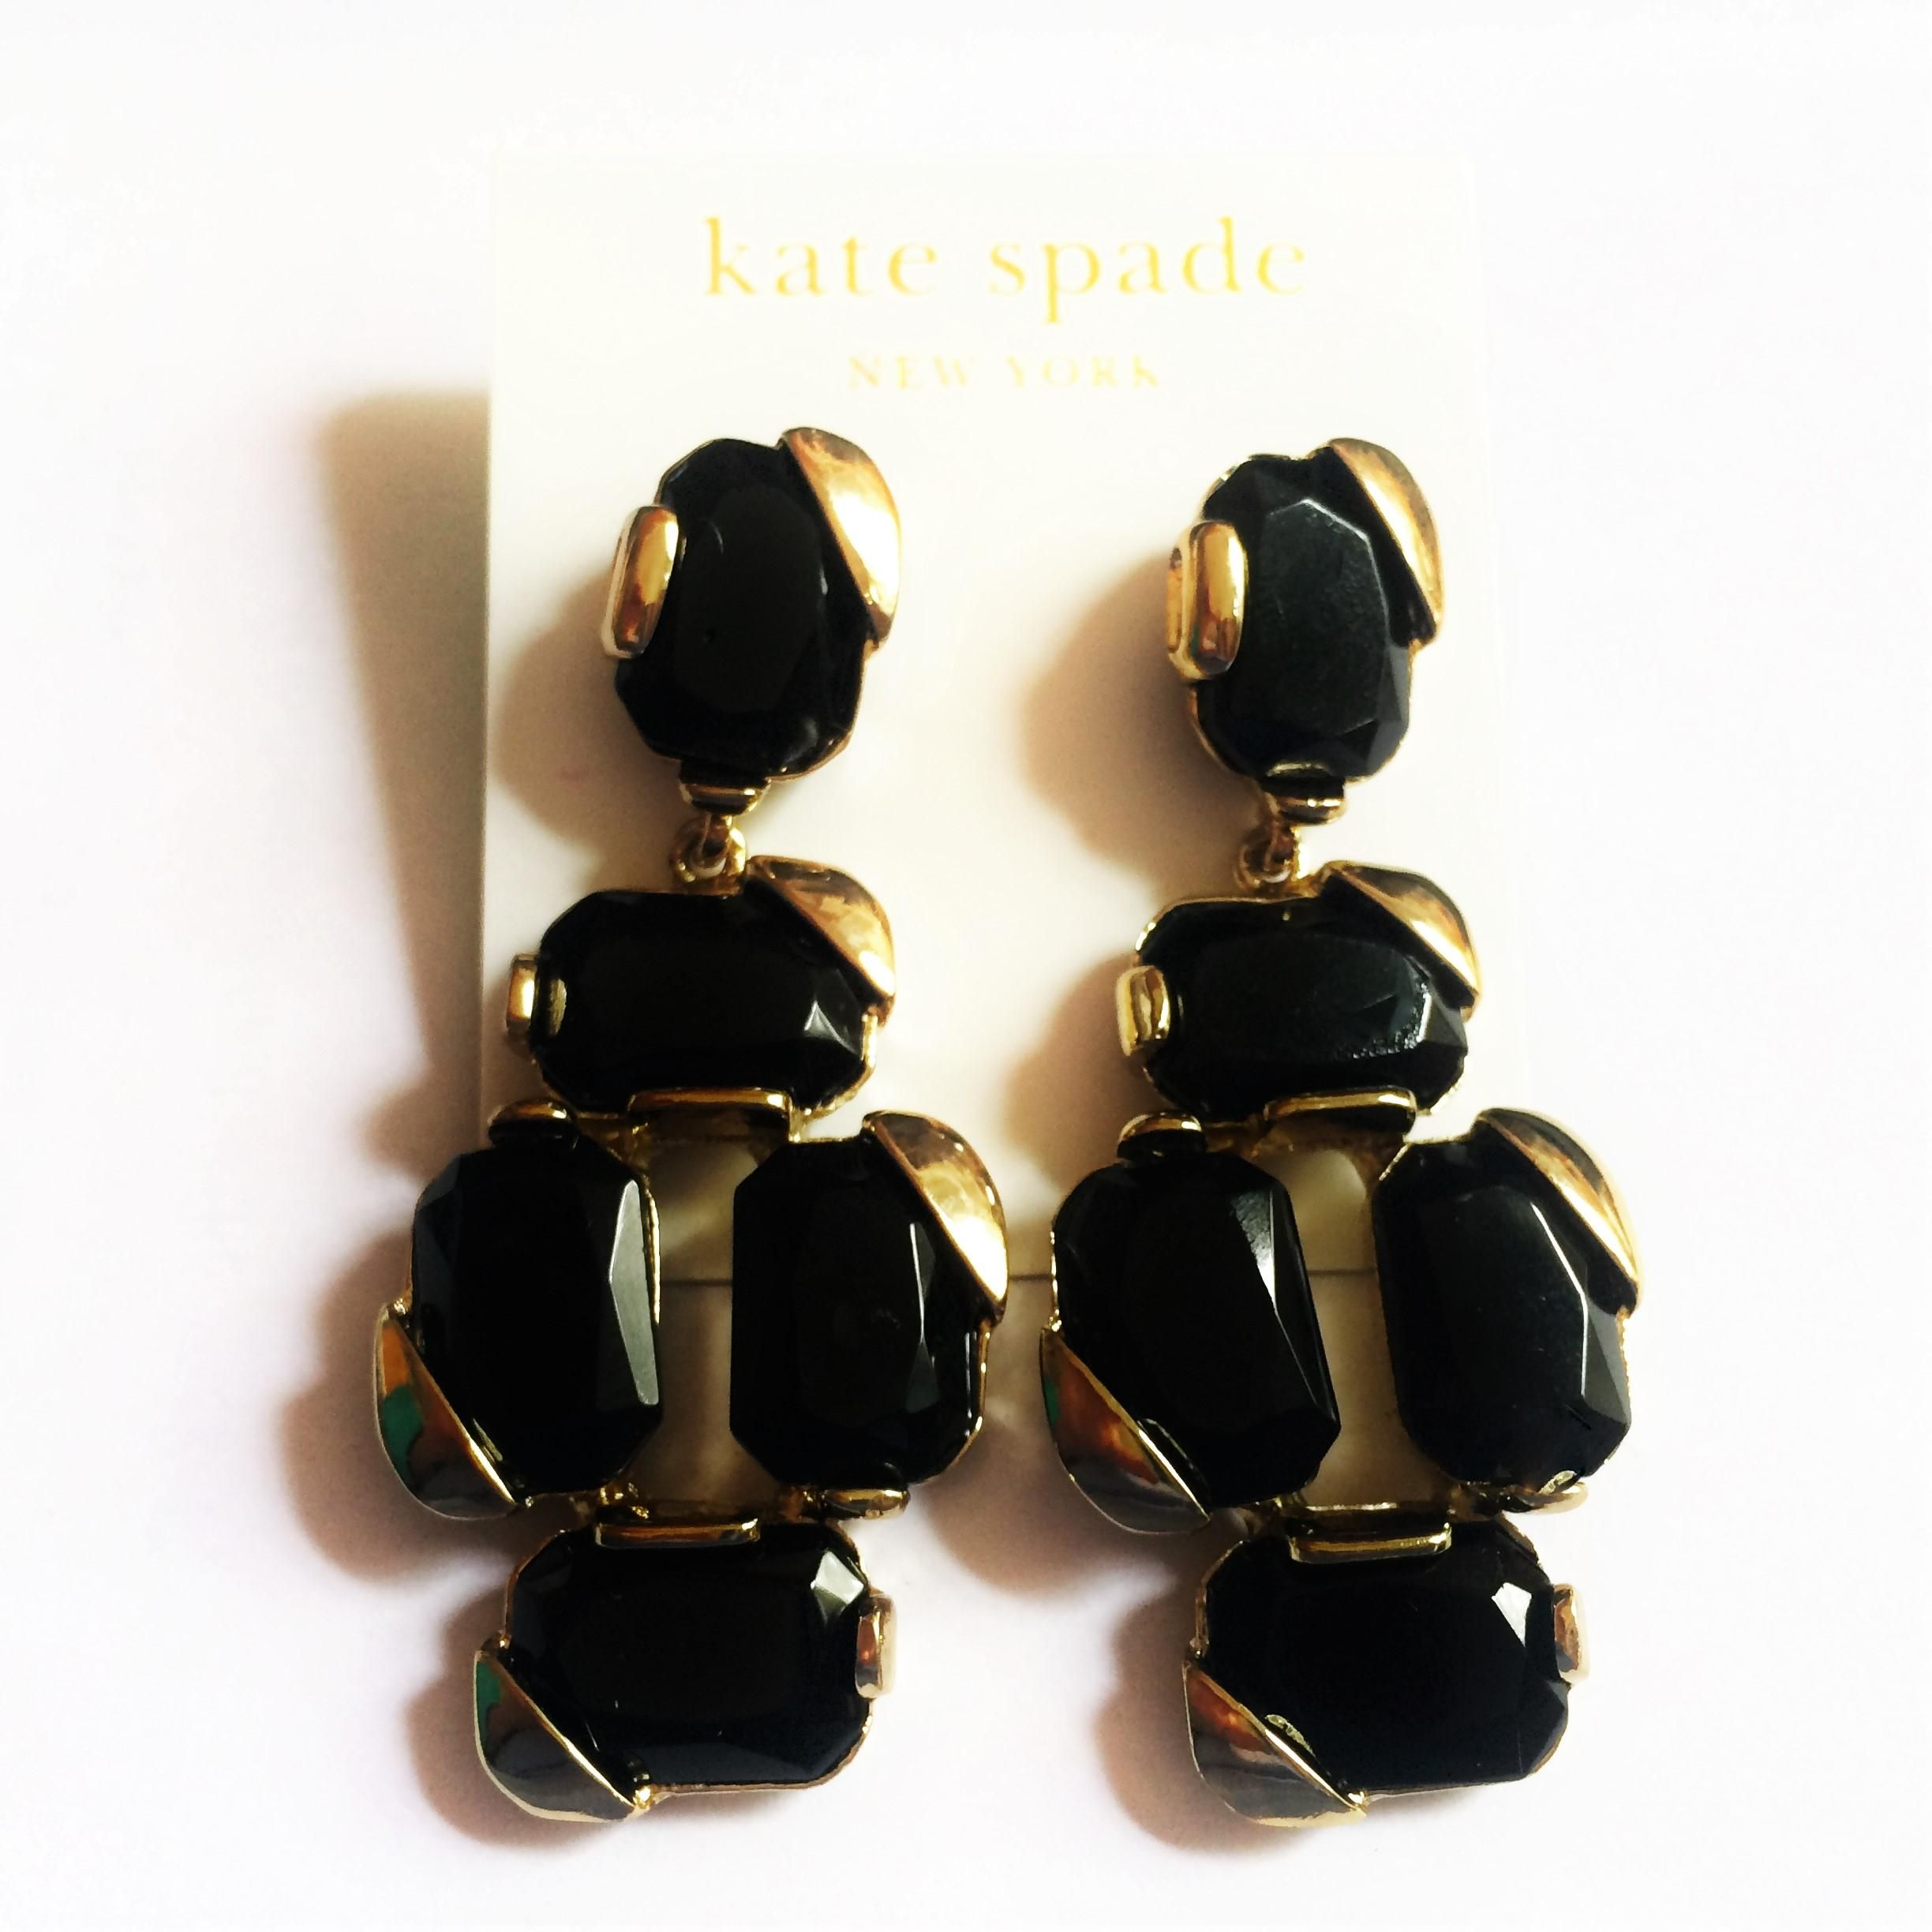 9e14a4ac0 Free shipping and guaranteed authenticity on NEW Stepping Stones Statement  Earrings, Black, Gold at Tradesy. Kate Spade Jewelry Stepping Stones  Statement ...